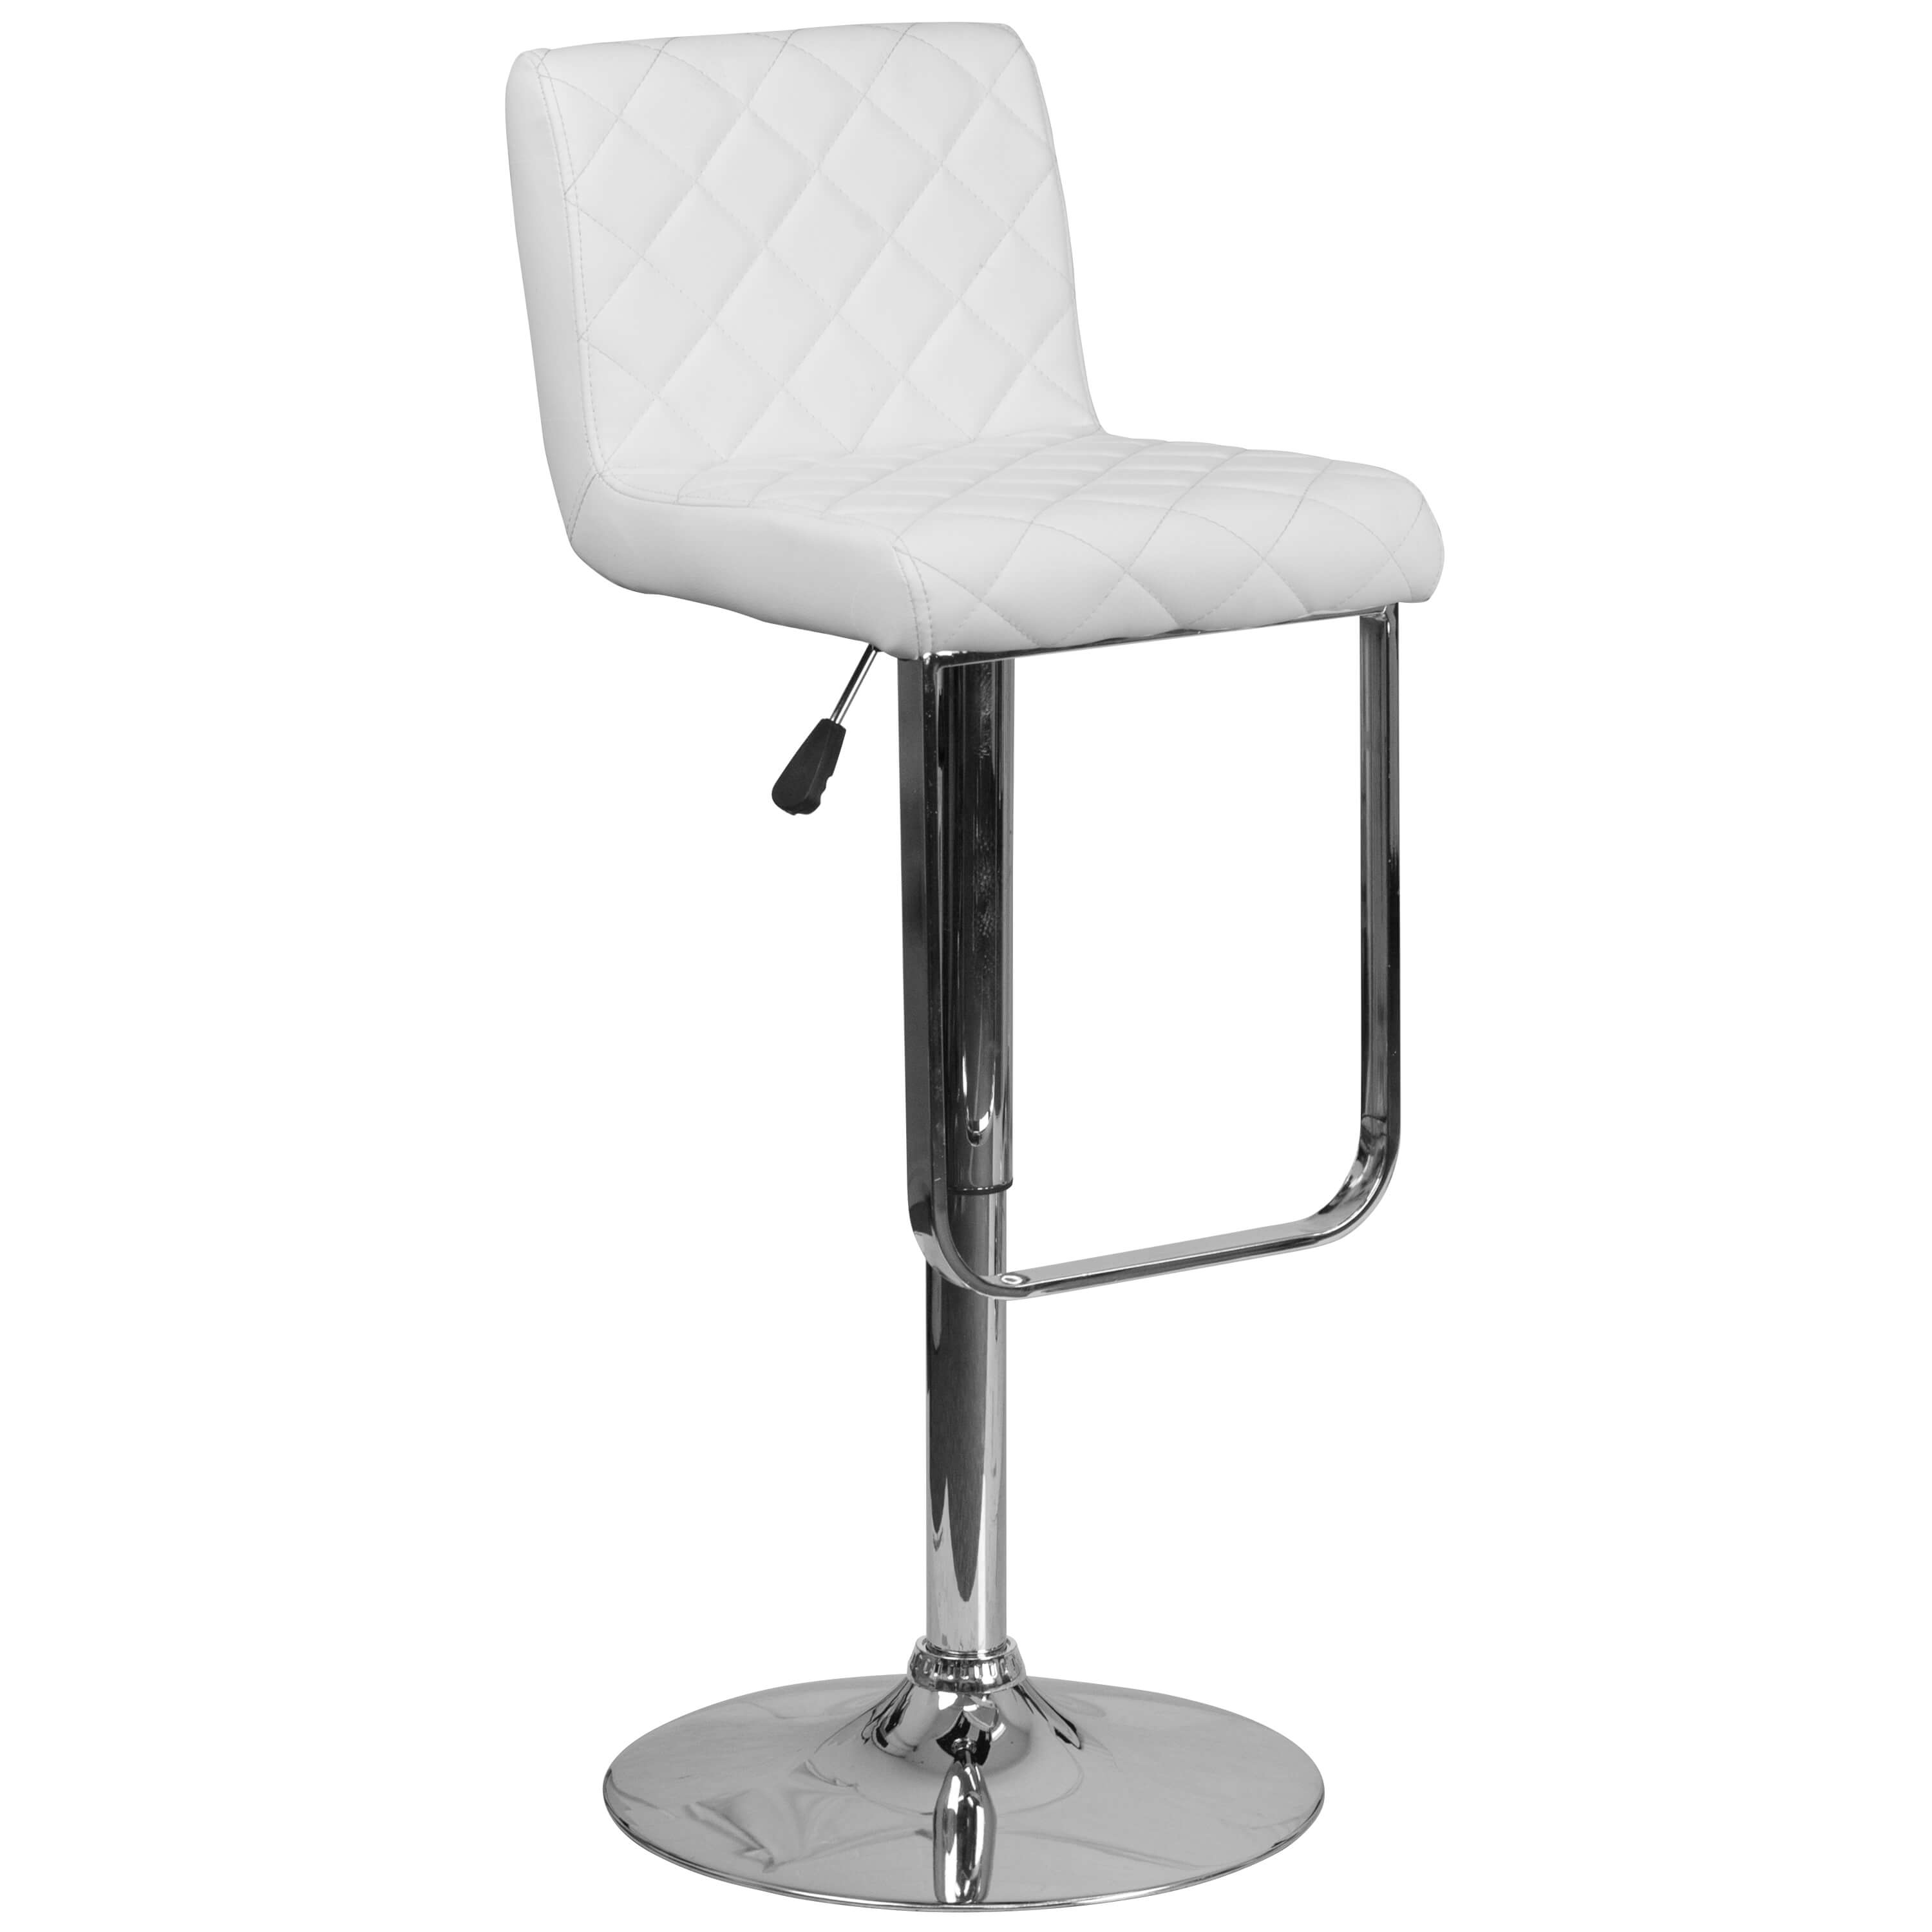 Cafe chairs CUB DS 8101 WH GG FLA